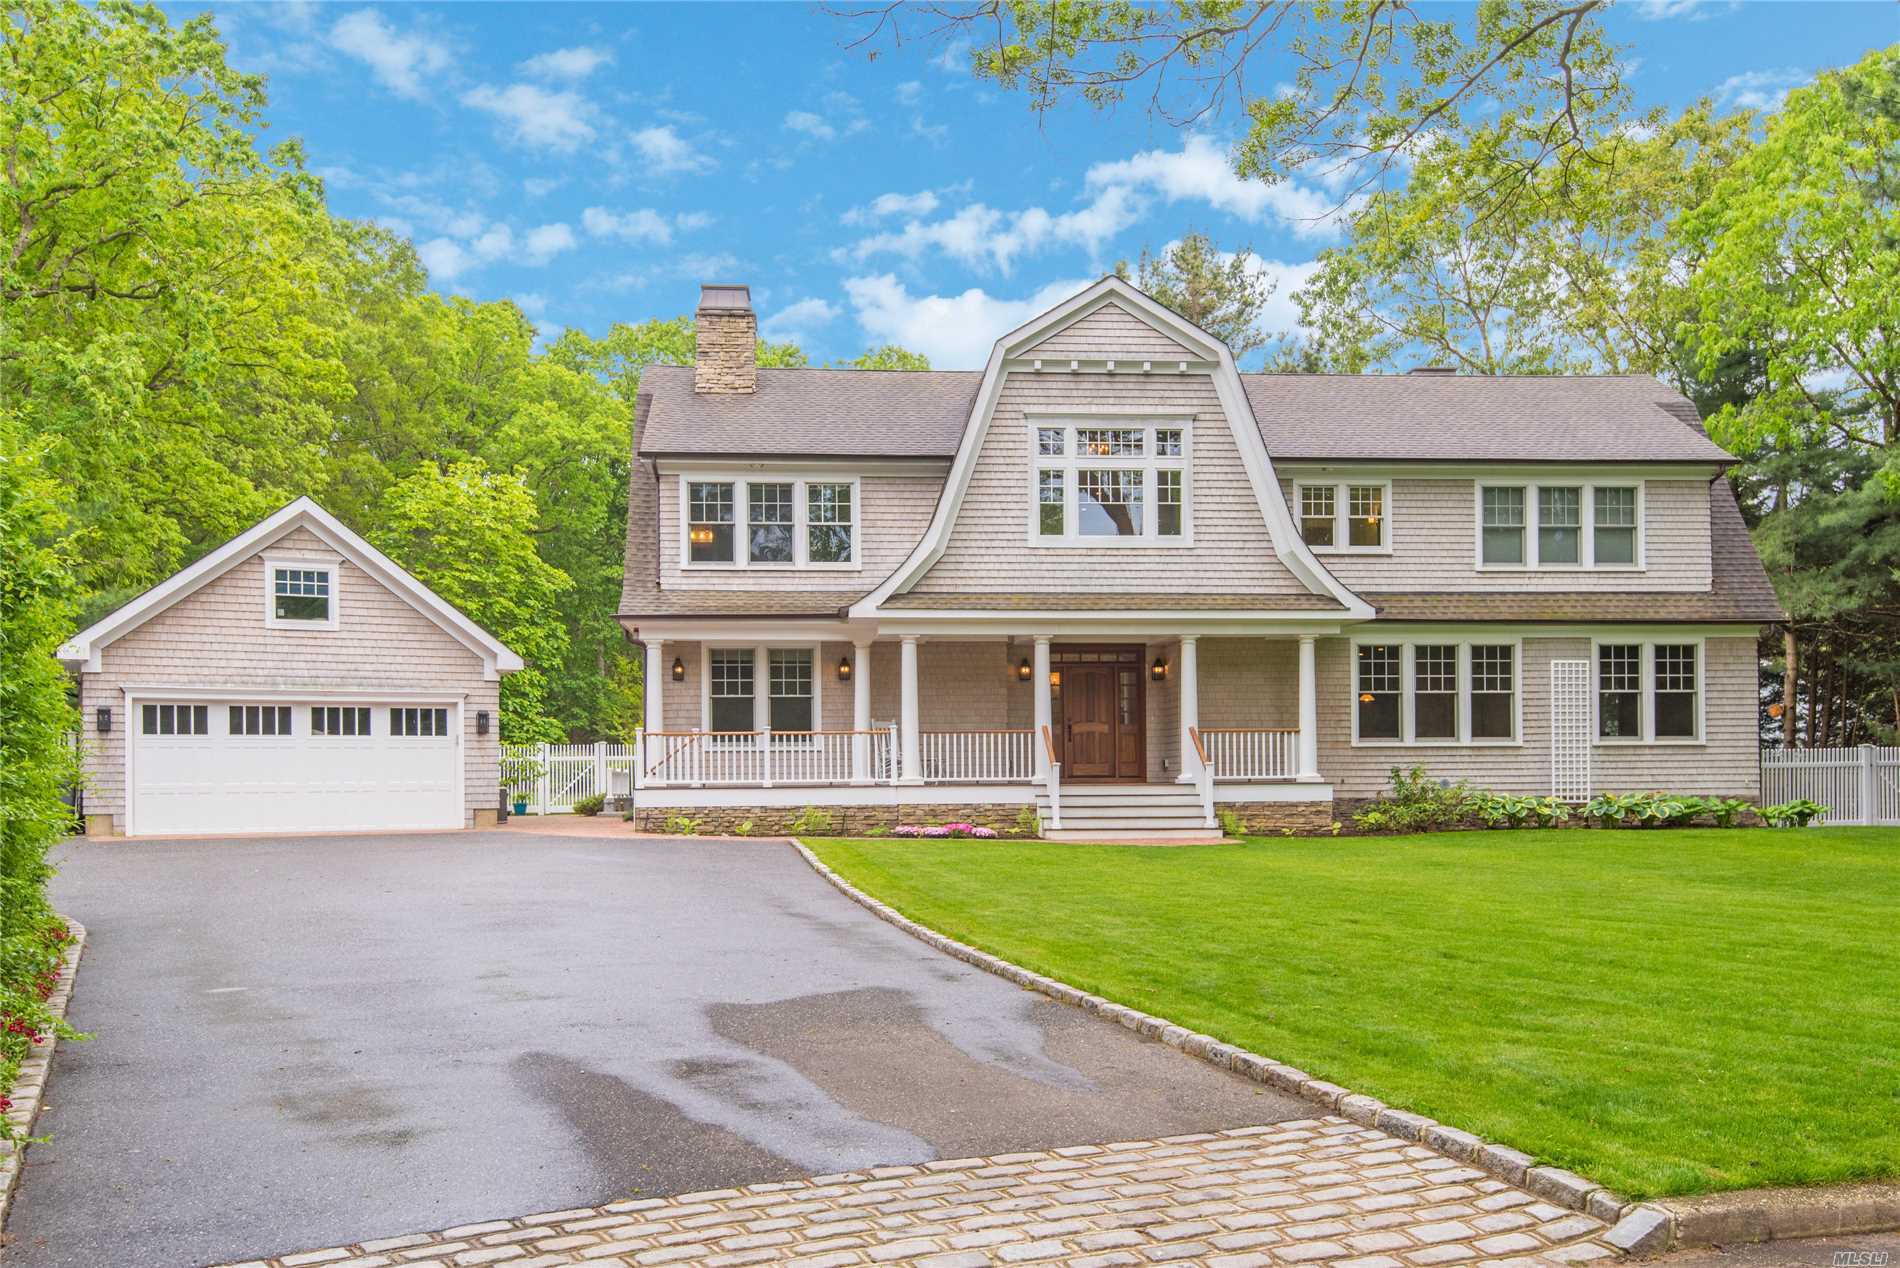 Like New Hampton Style Custom Built Home With Exceptional Details and Amenities.This One Of A Kind Magnificent Property Features A Fabulous Gourmet Kitchen that Opens To A Great Room With High Ceilings Overlooking The Stunning Back Yard With An In Ground Heated Pool.The Master Suite Has A Huge Walk In Closet.Gas Fireplace and A Beautiful Master Bath. Ipe Wood Porches Surround This Stunning Home, Detached Over Sized Garages, Award Winning Half Hollow Hills Schools, Perfect Cul De Sac Location